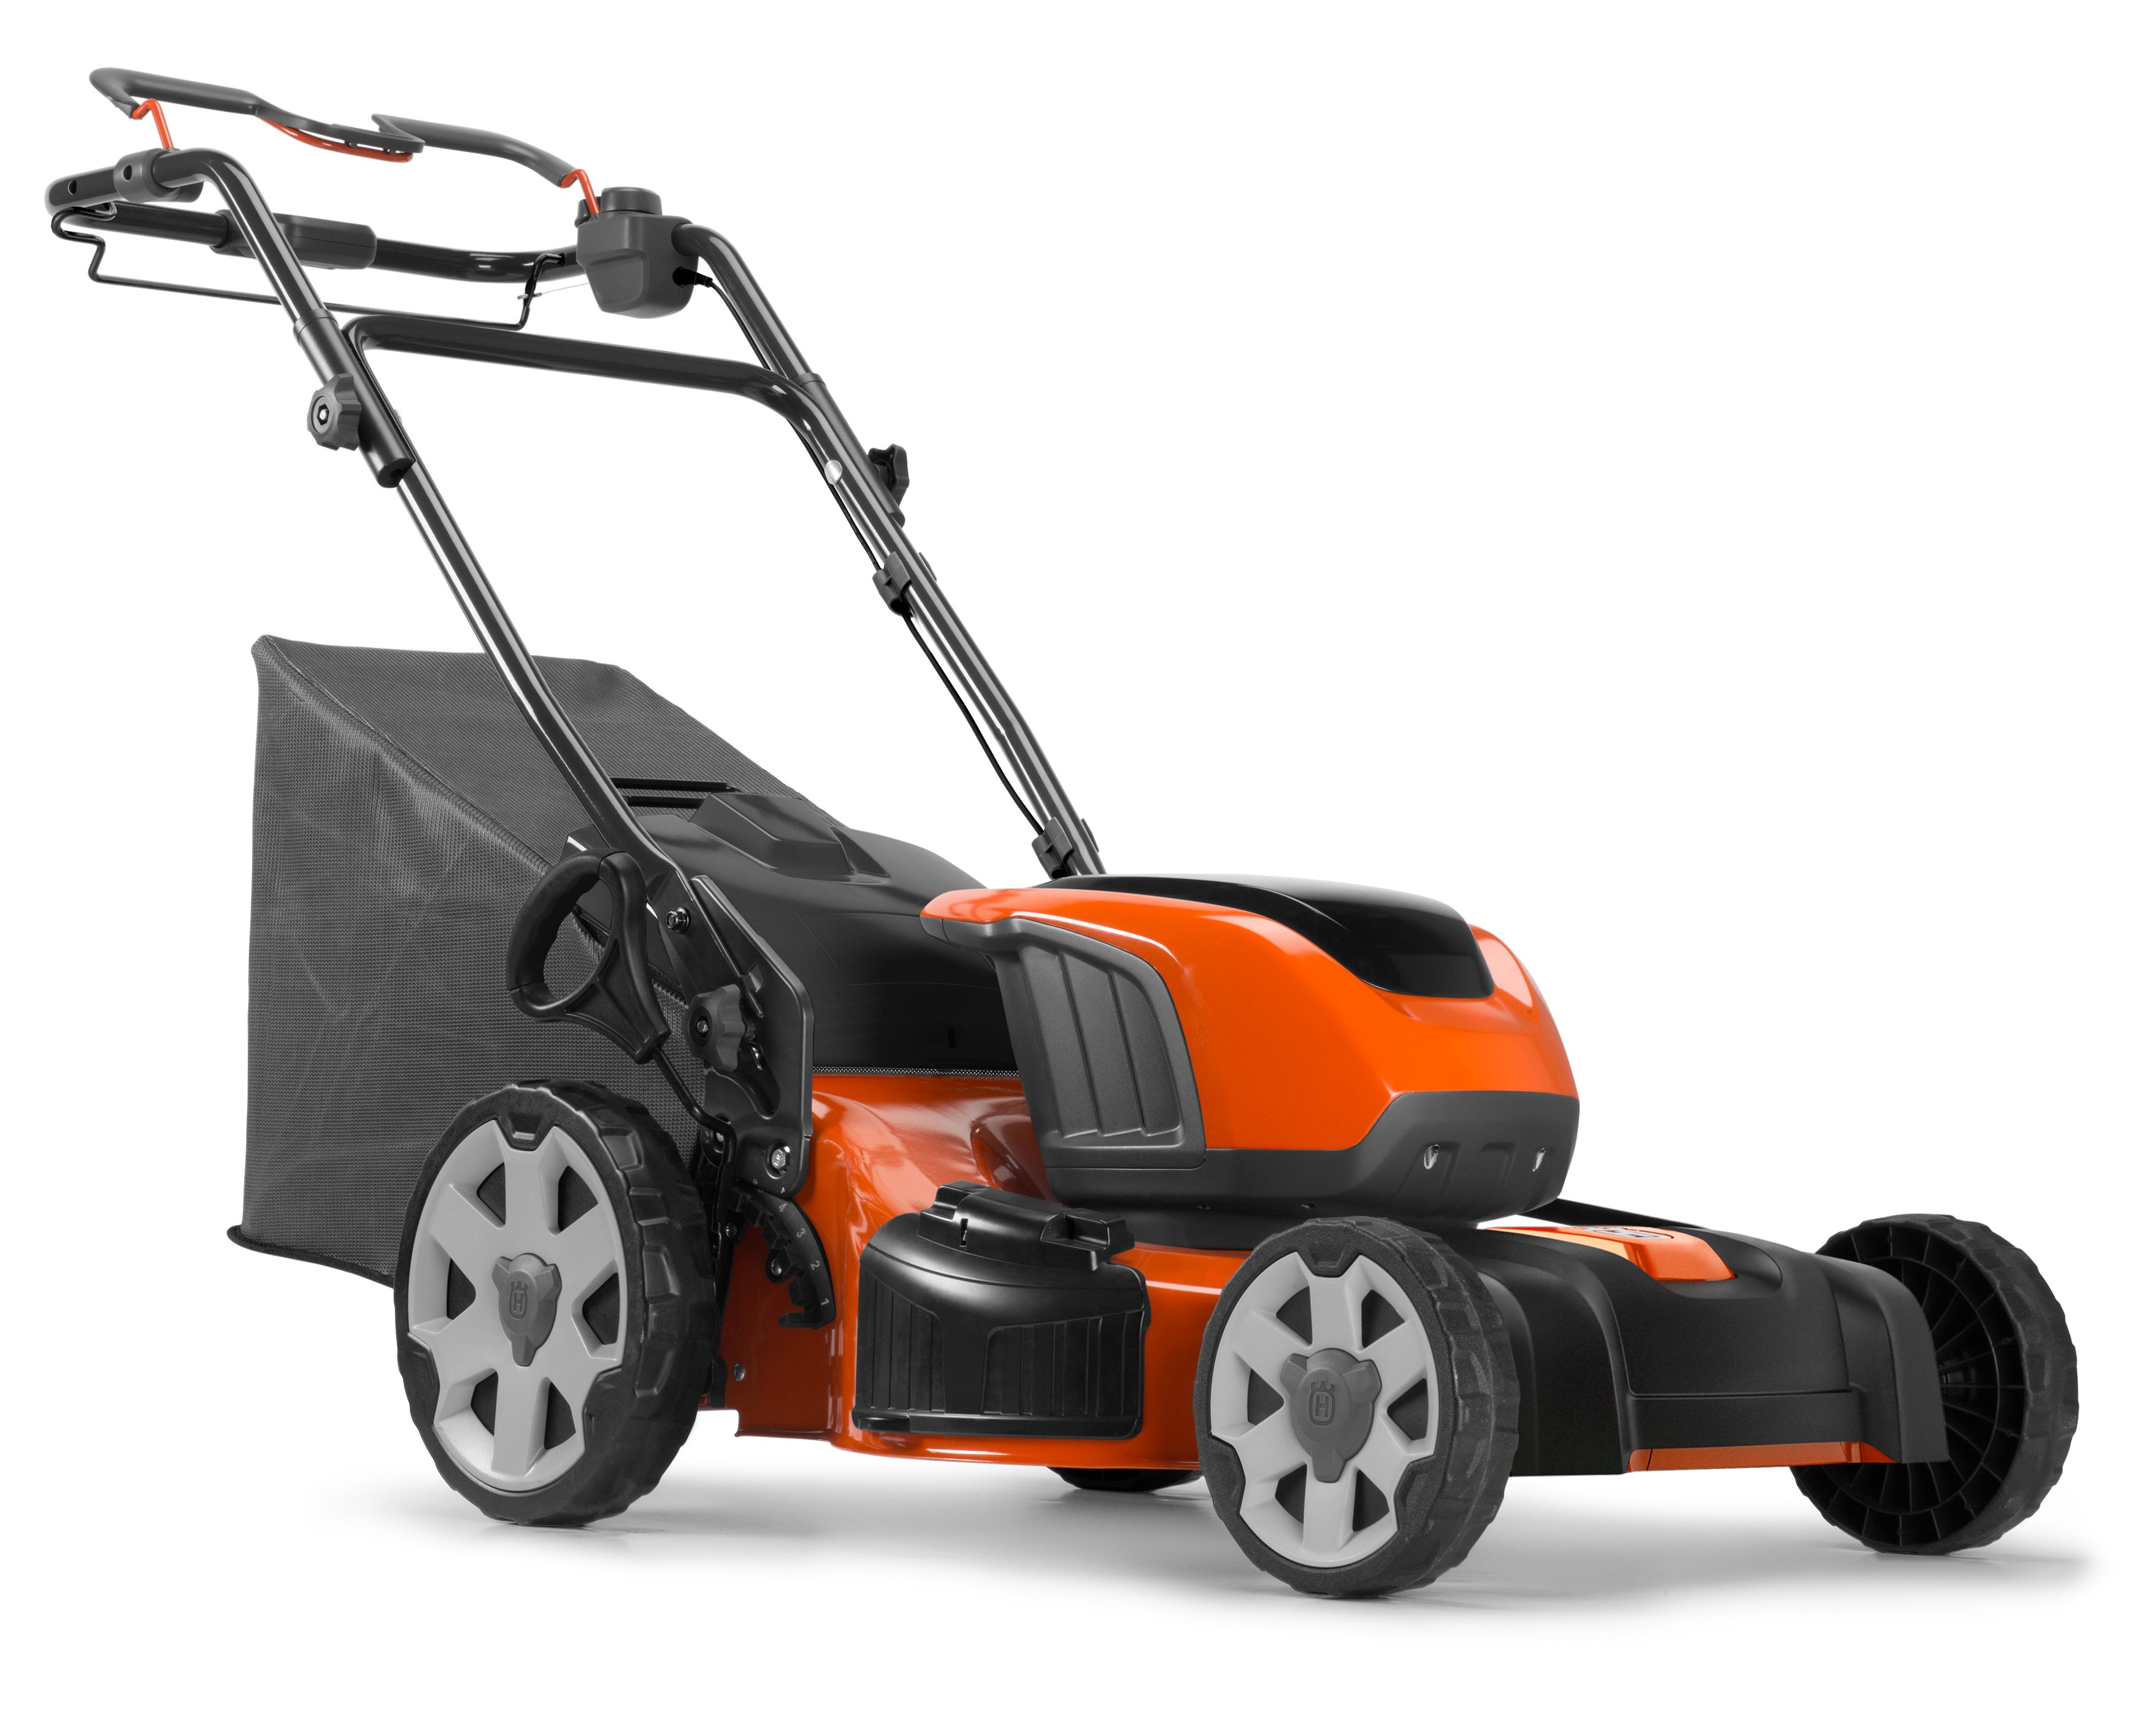 Image for LE221R Battery Self-Propelled Lawn Mower                                                                                         from HusqvarnaB2C